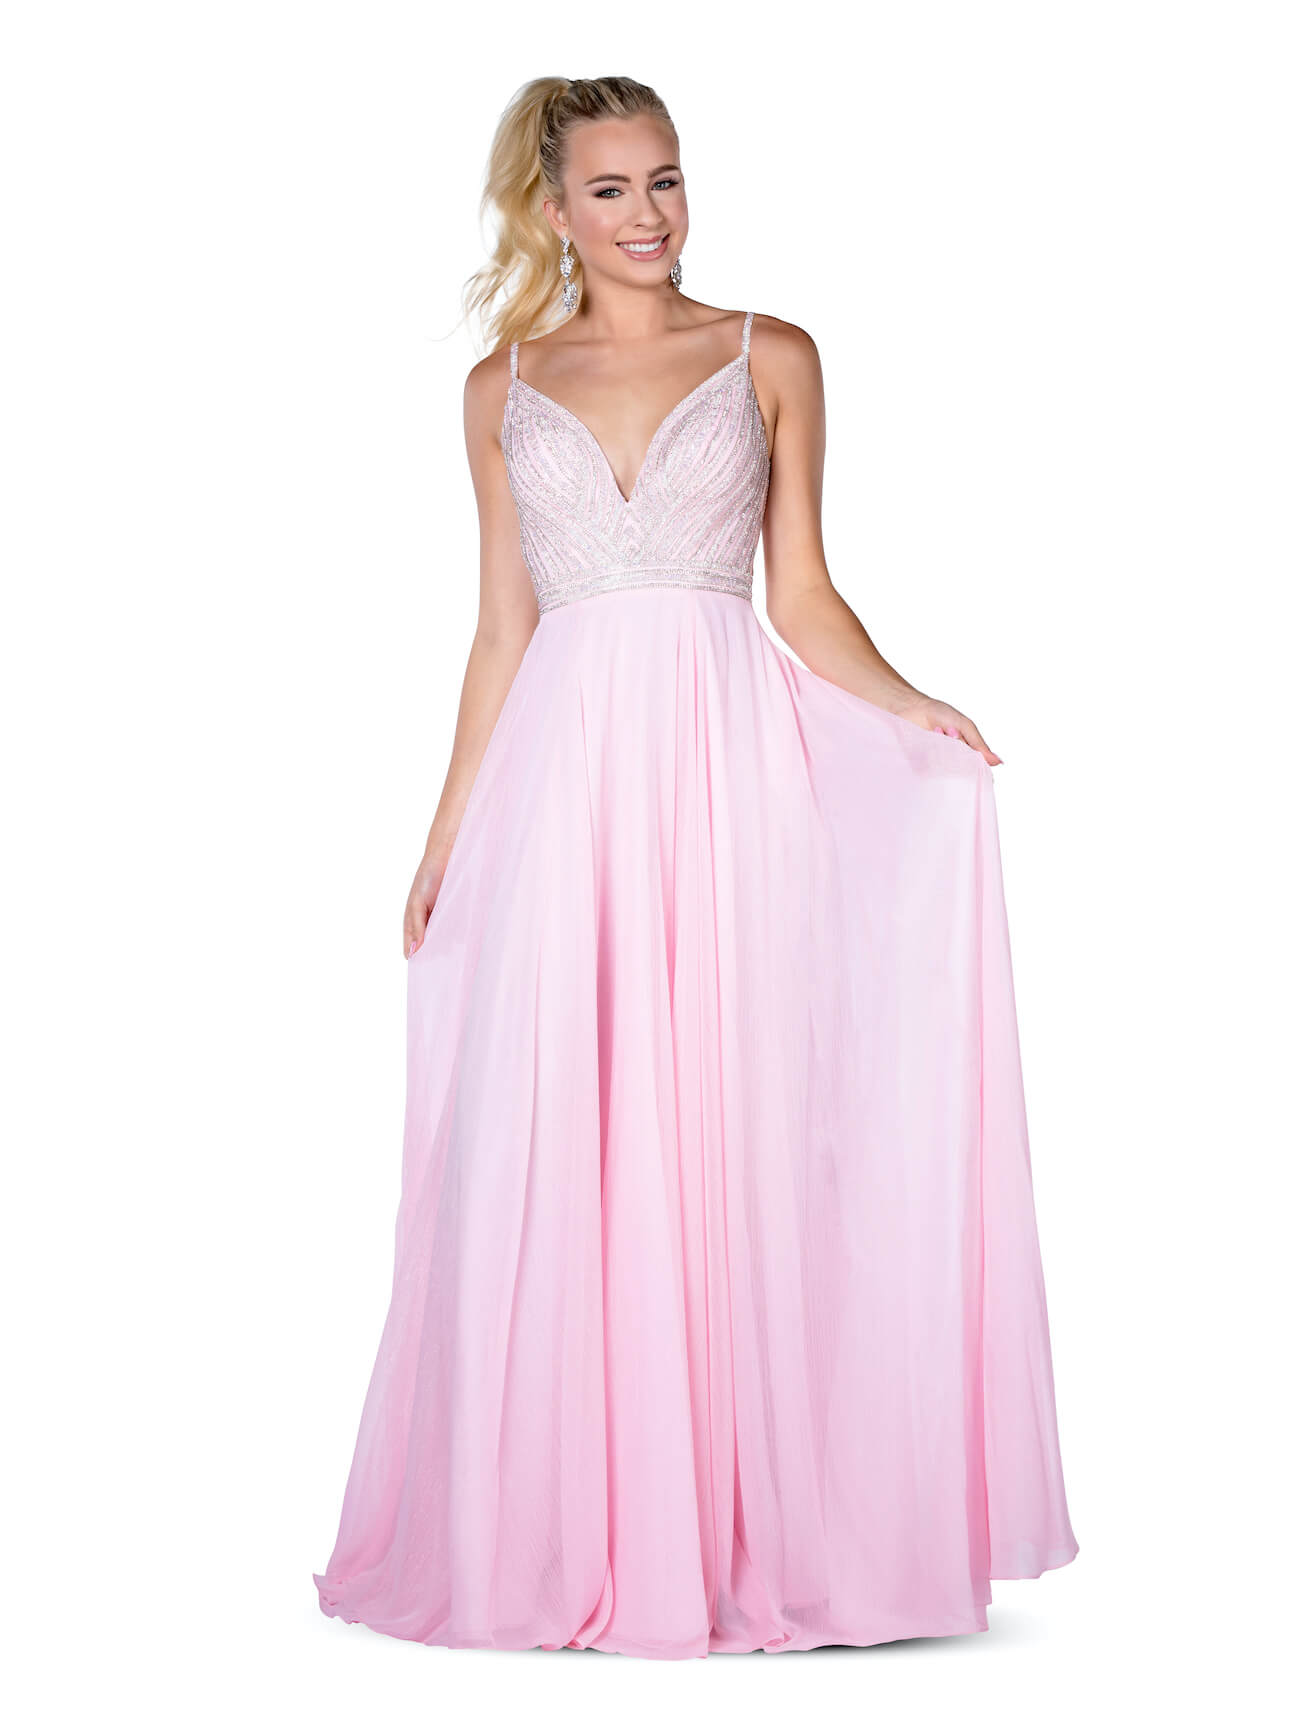 Queenly size 6 Vienna Pink A-line evening gown/formal dress